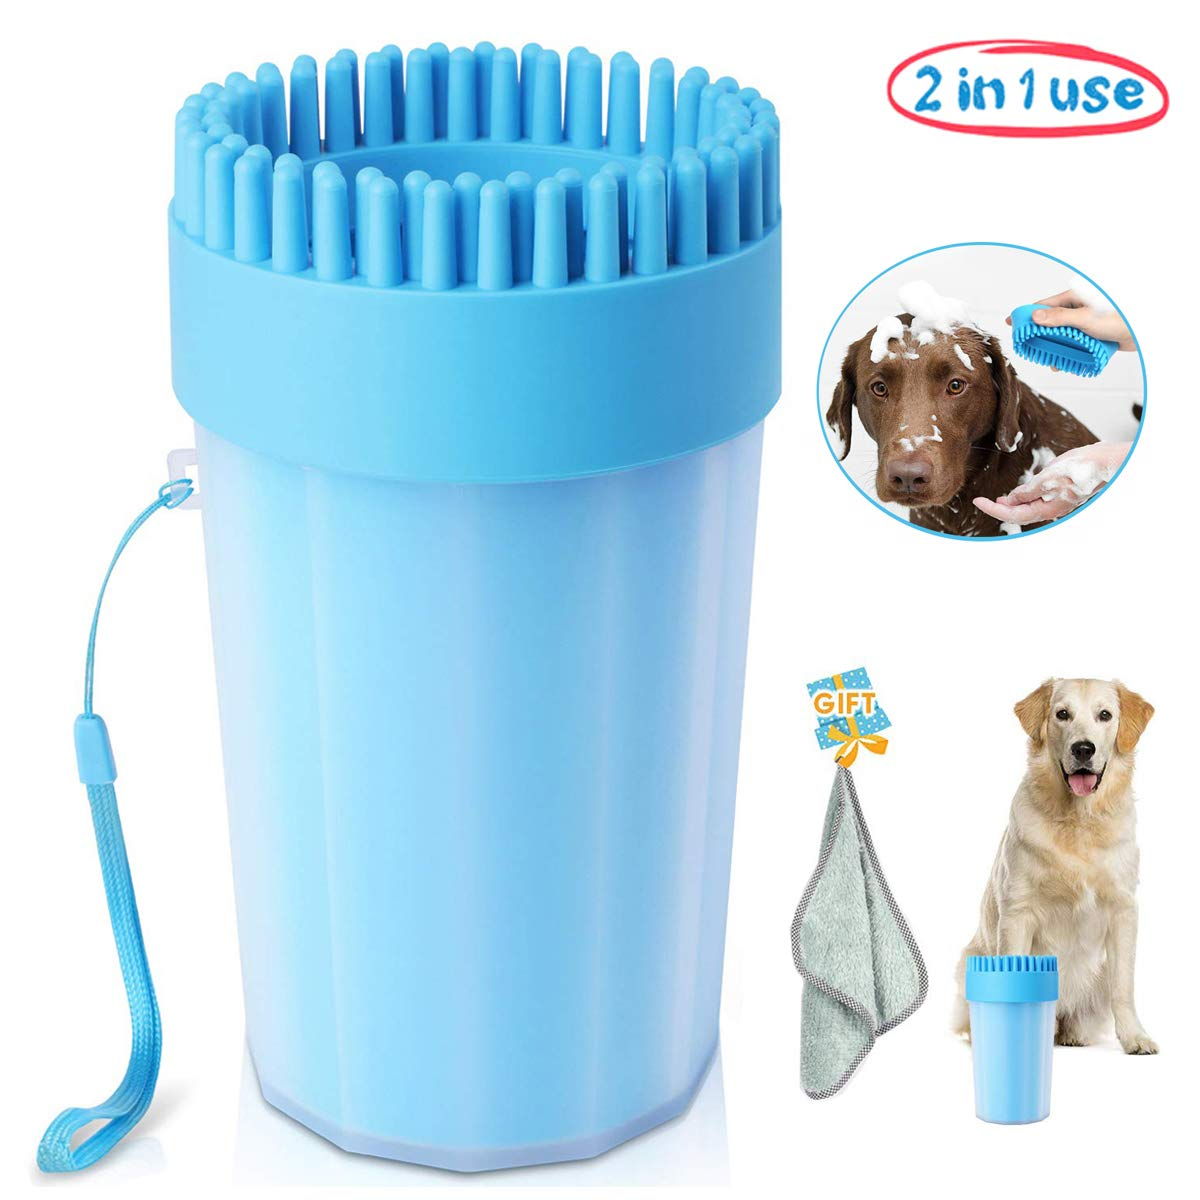 Portable Dog Paw Cleaner Upgrade Dog Cleaner with Towel Dog Cleaning Brush Paw Cleaner for Dogs and Cats by Chooseen